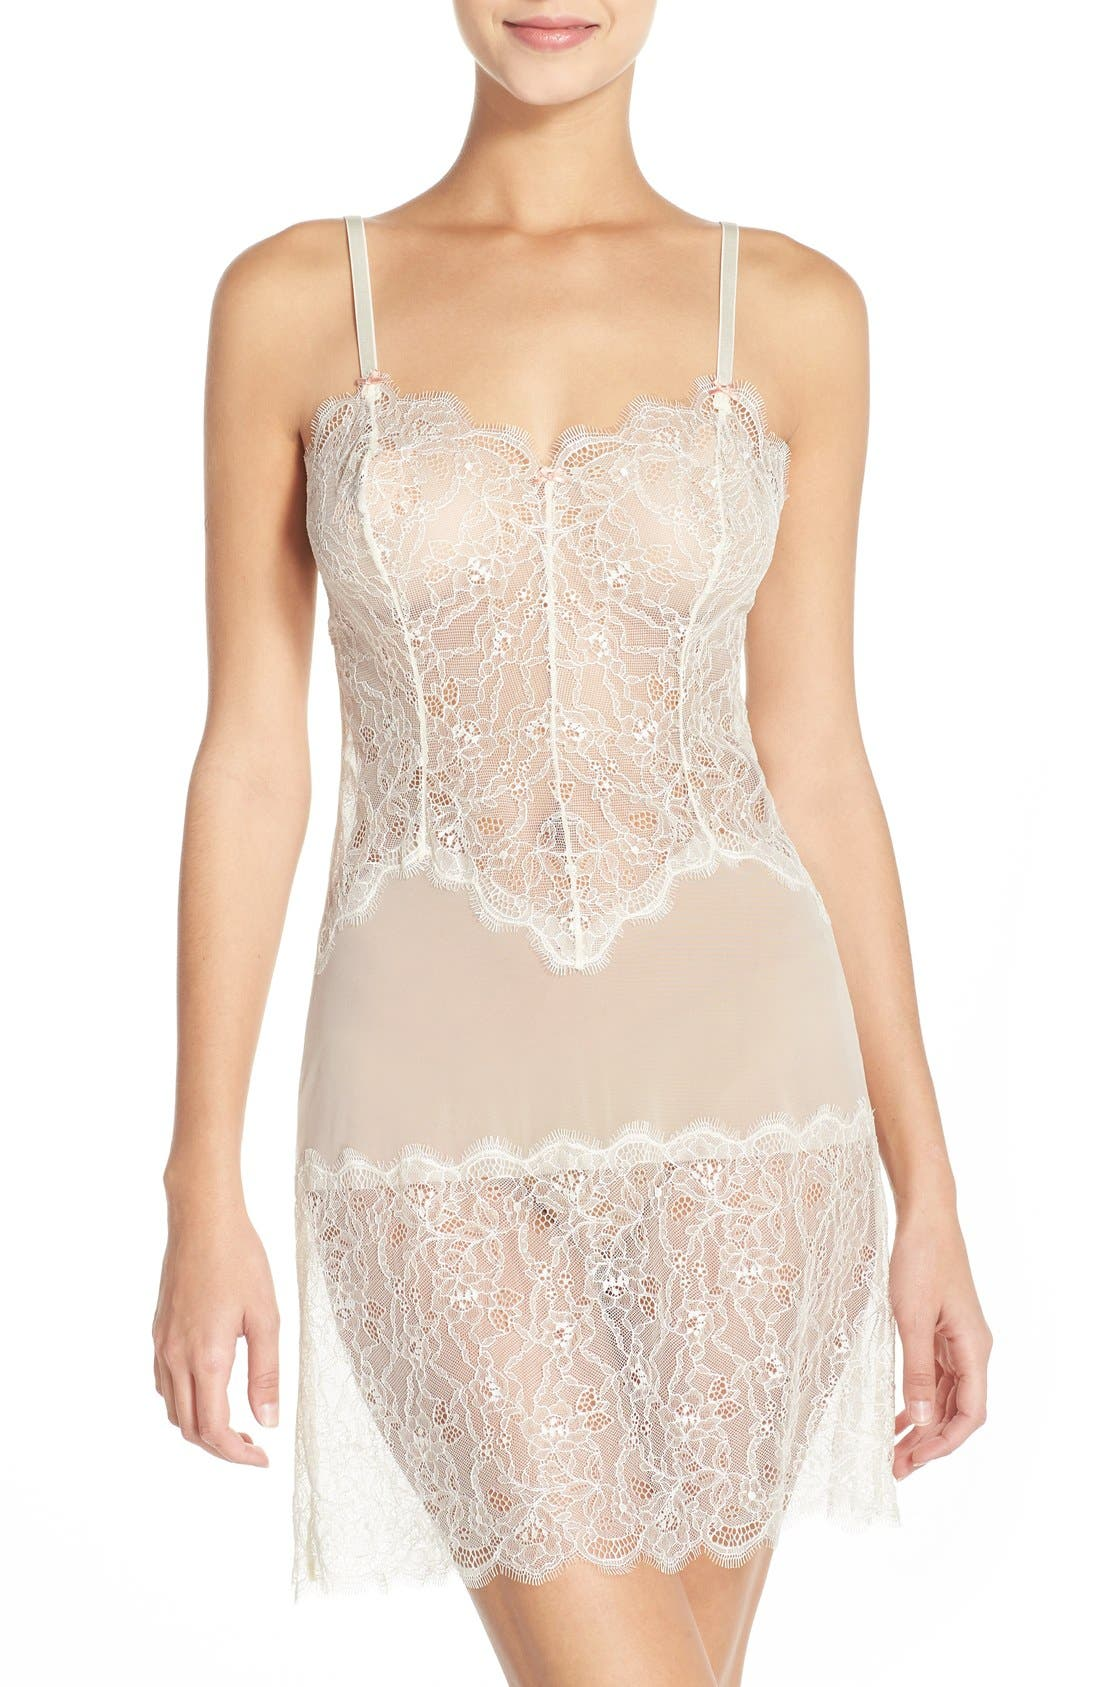 'b.sultry' Chemise,                             Main thumbnail 1, color,                             Vanilla Ice